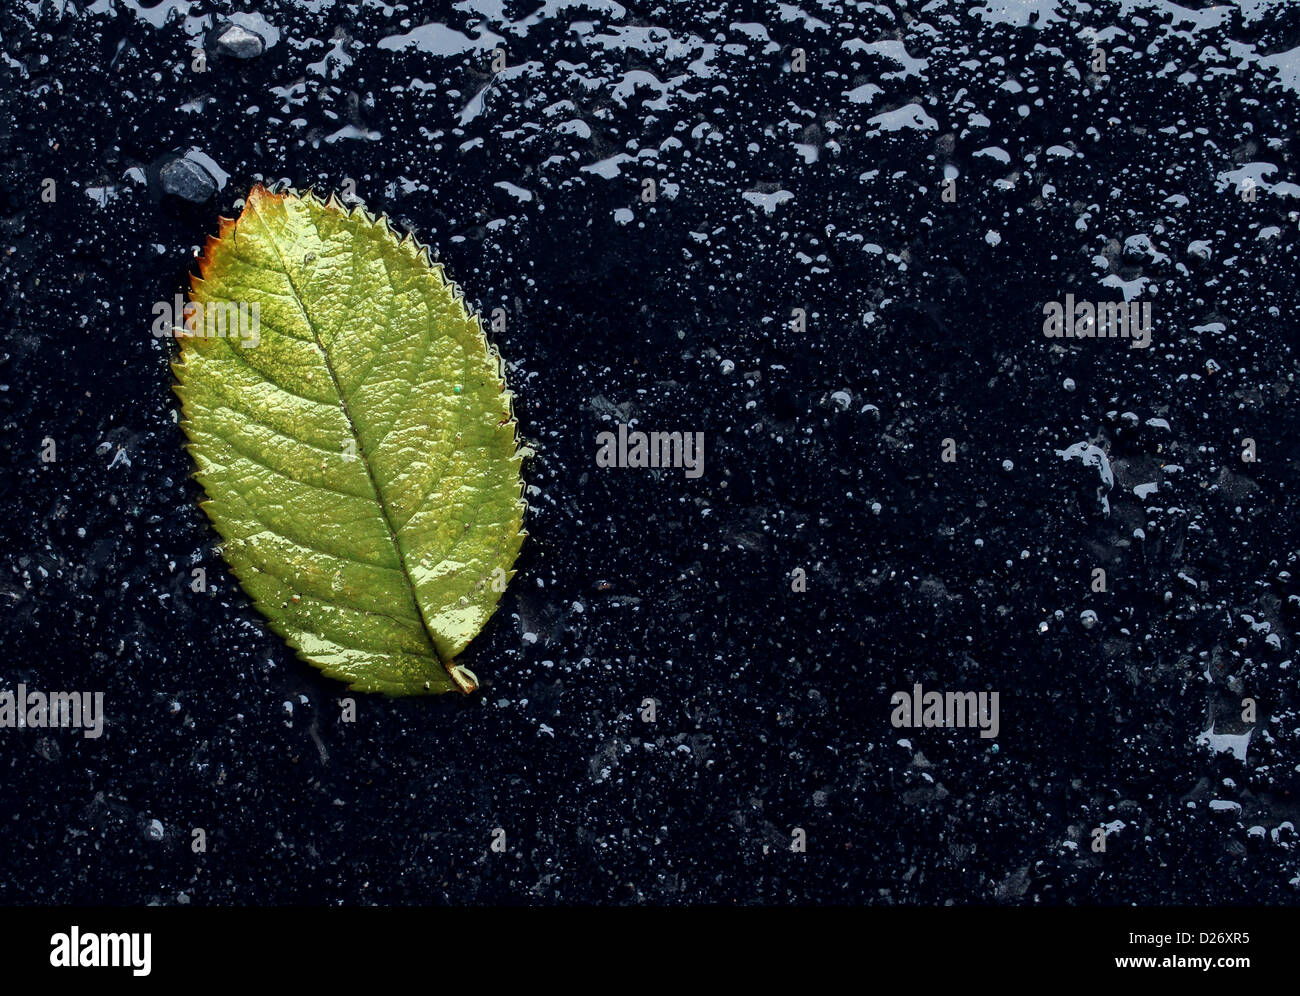 Wet single fallen green leaf on black asphalt as a symbol of renewal and hope after winter or before spring season Stock Photo